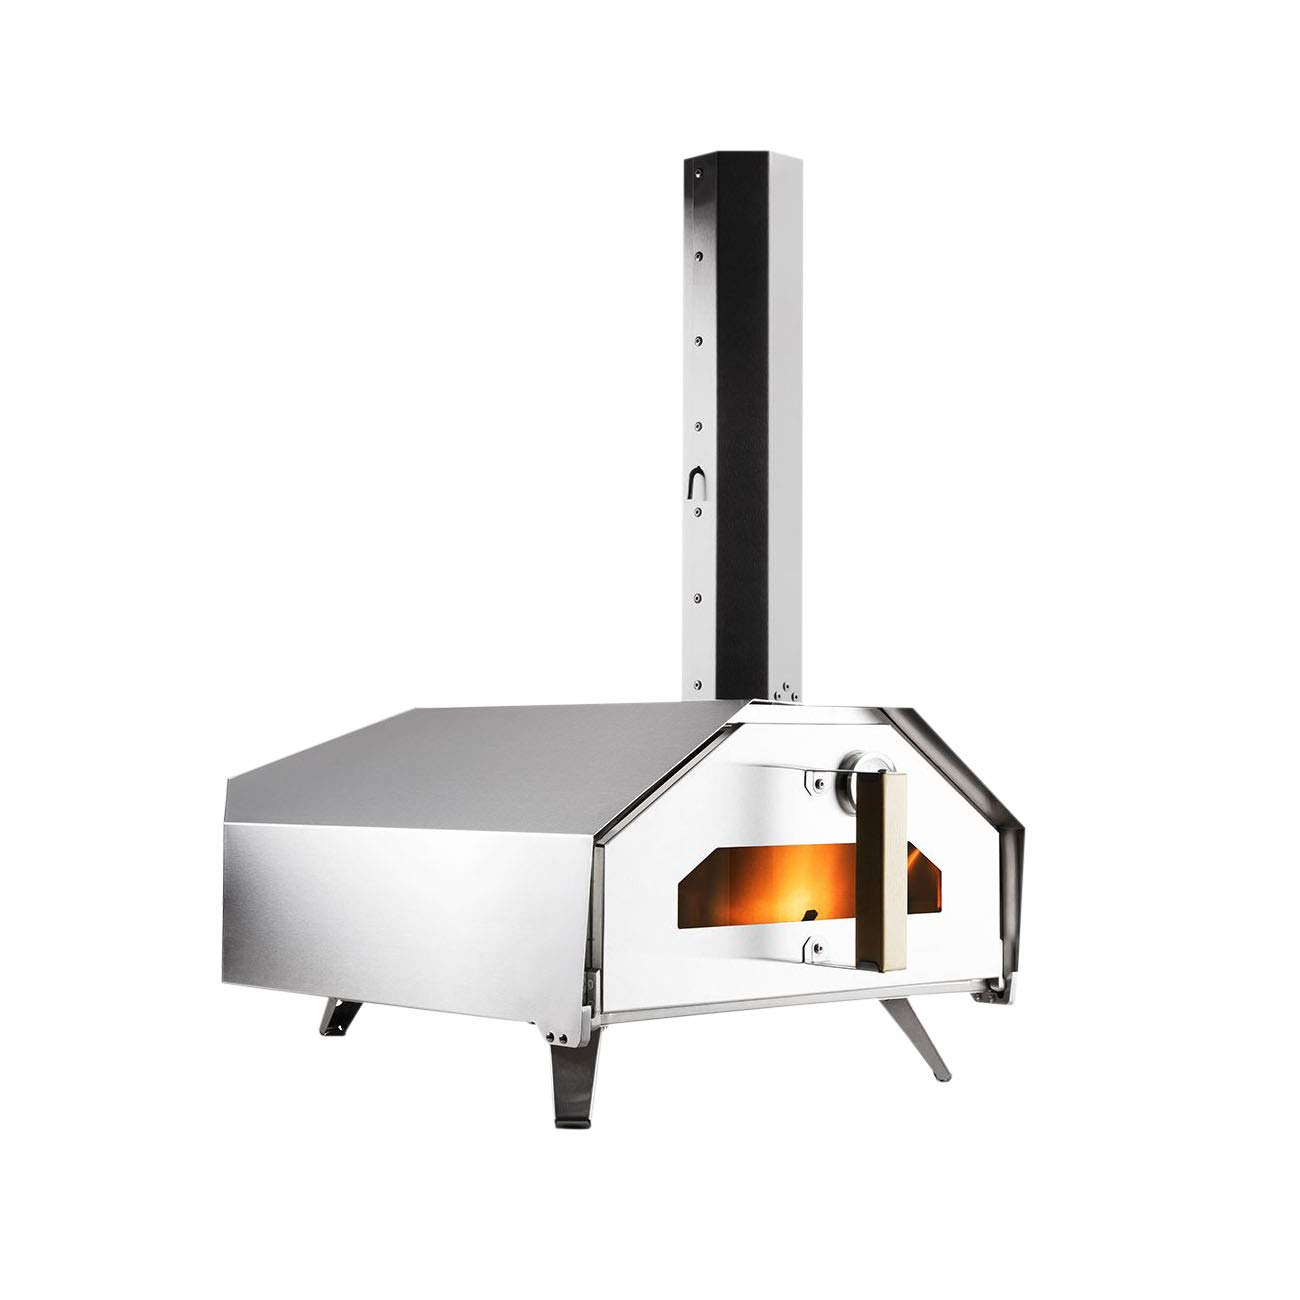 Uuni Pro Multi-Fueled Outdoor Pizza Oven